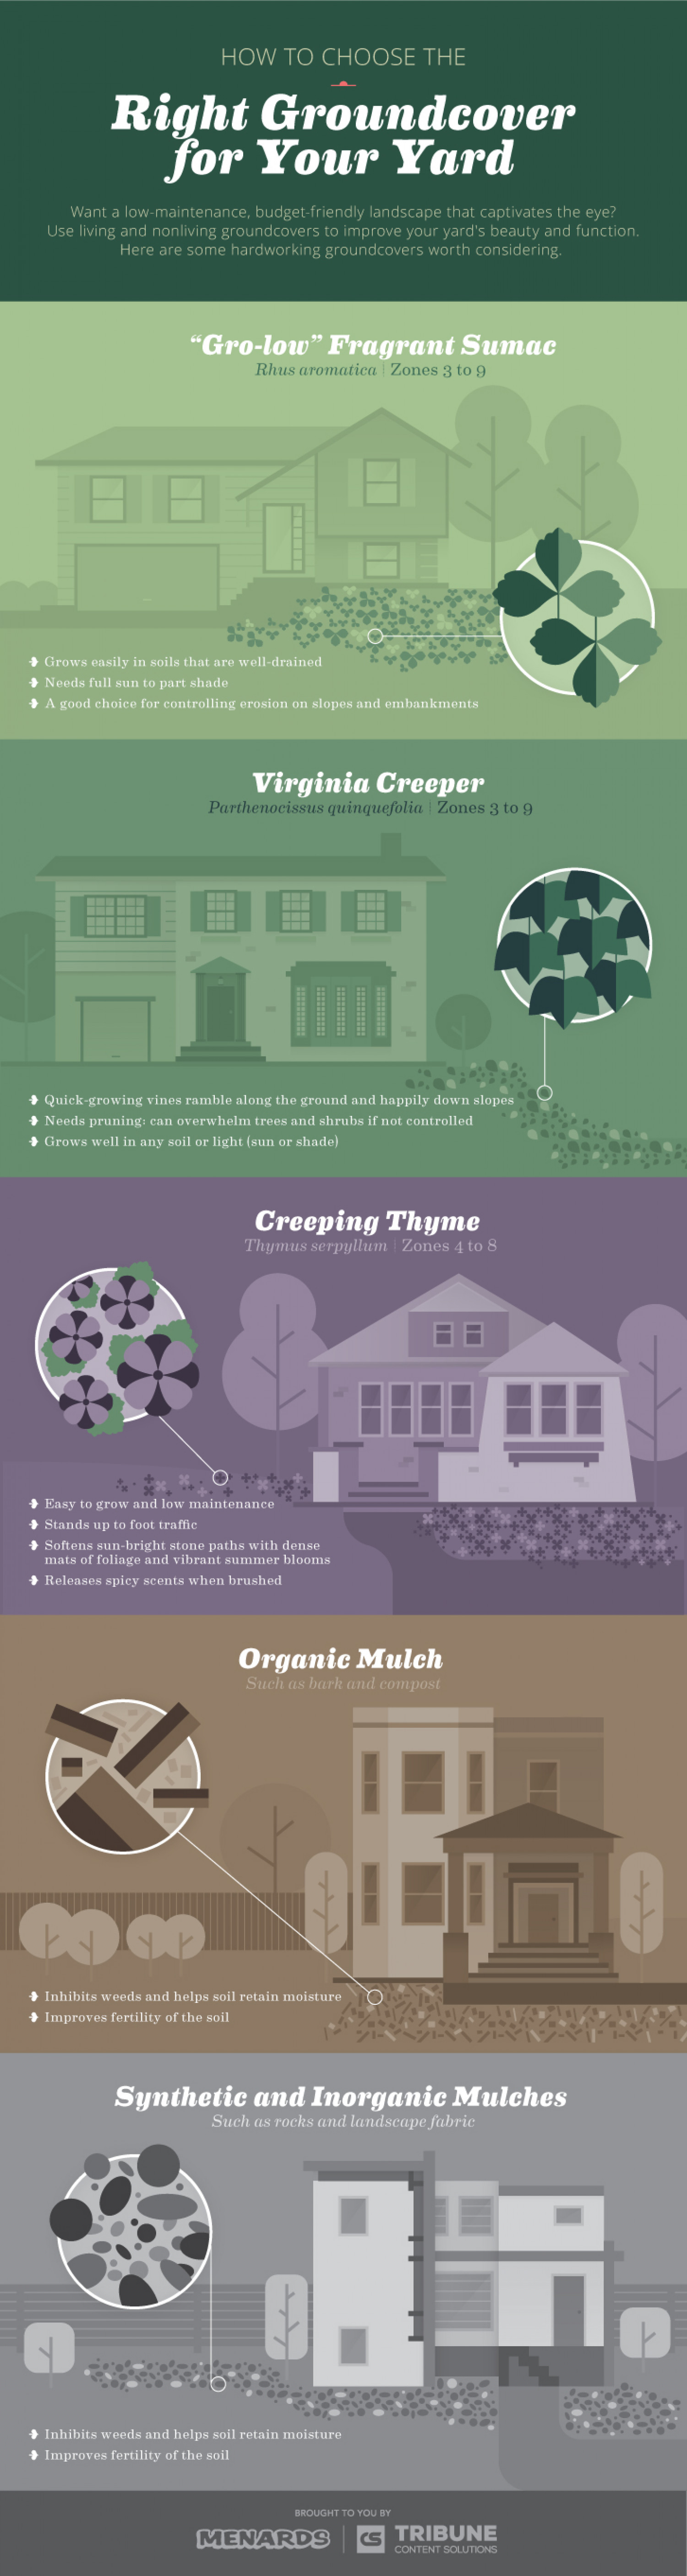 How to Choose the Right Groundcover for Your Yard Infographic